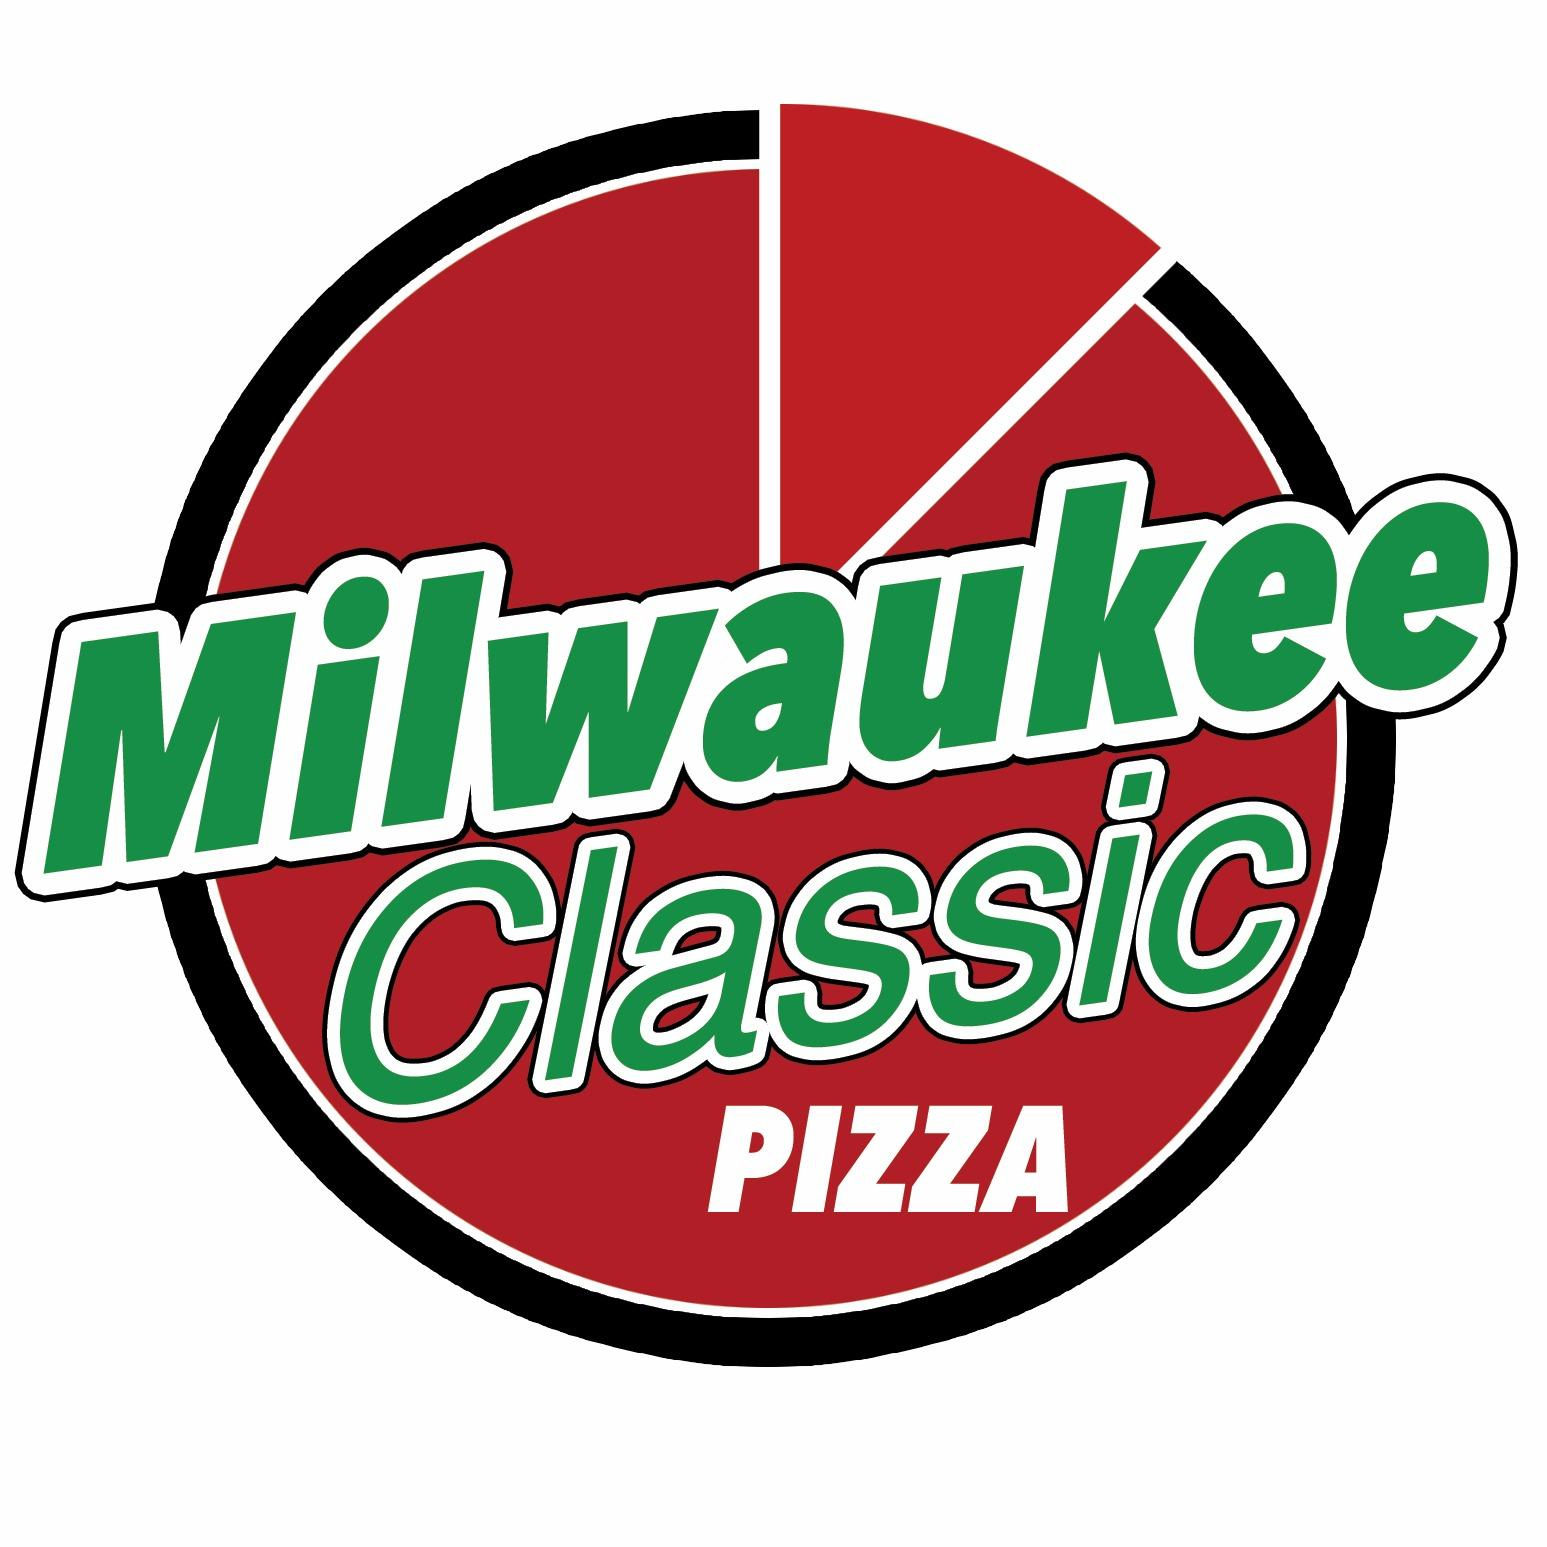 Milwaukee Classic Pizza